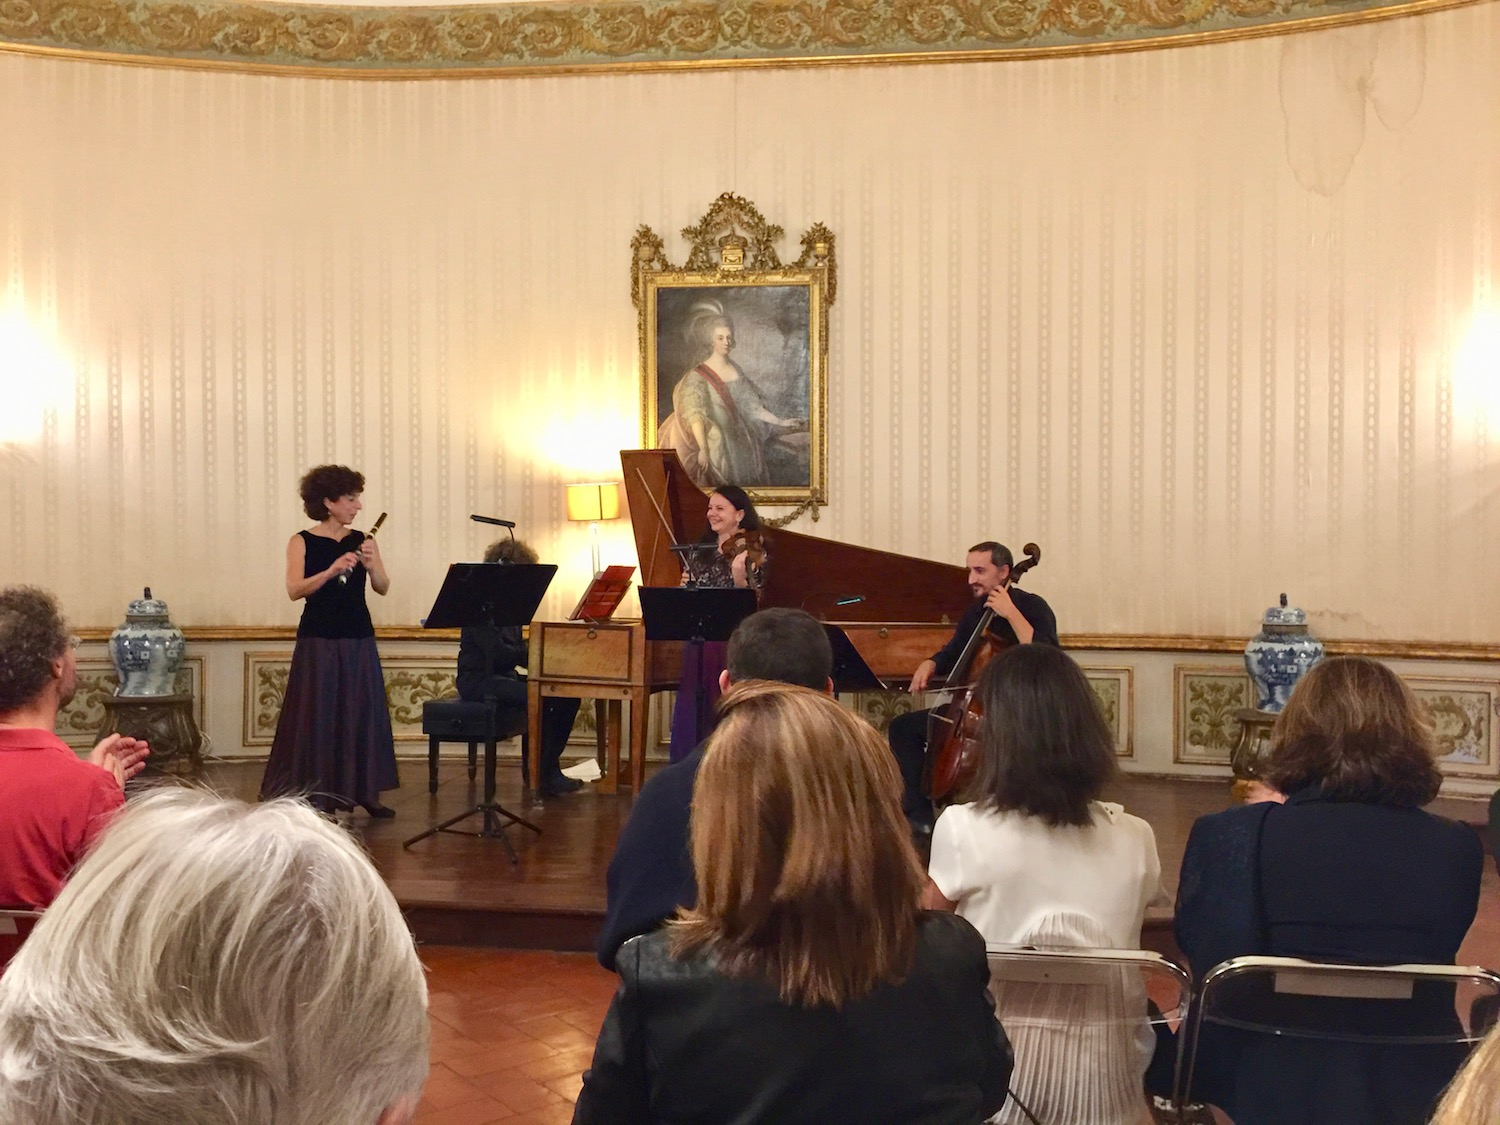 Laura Pontecorvo, flute, Guido Morini, cembalo, Iskrena Yordanova, violin, and Marco Ceccato, cello— Helianthus Ensemble